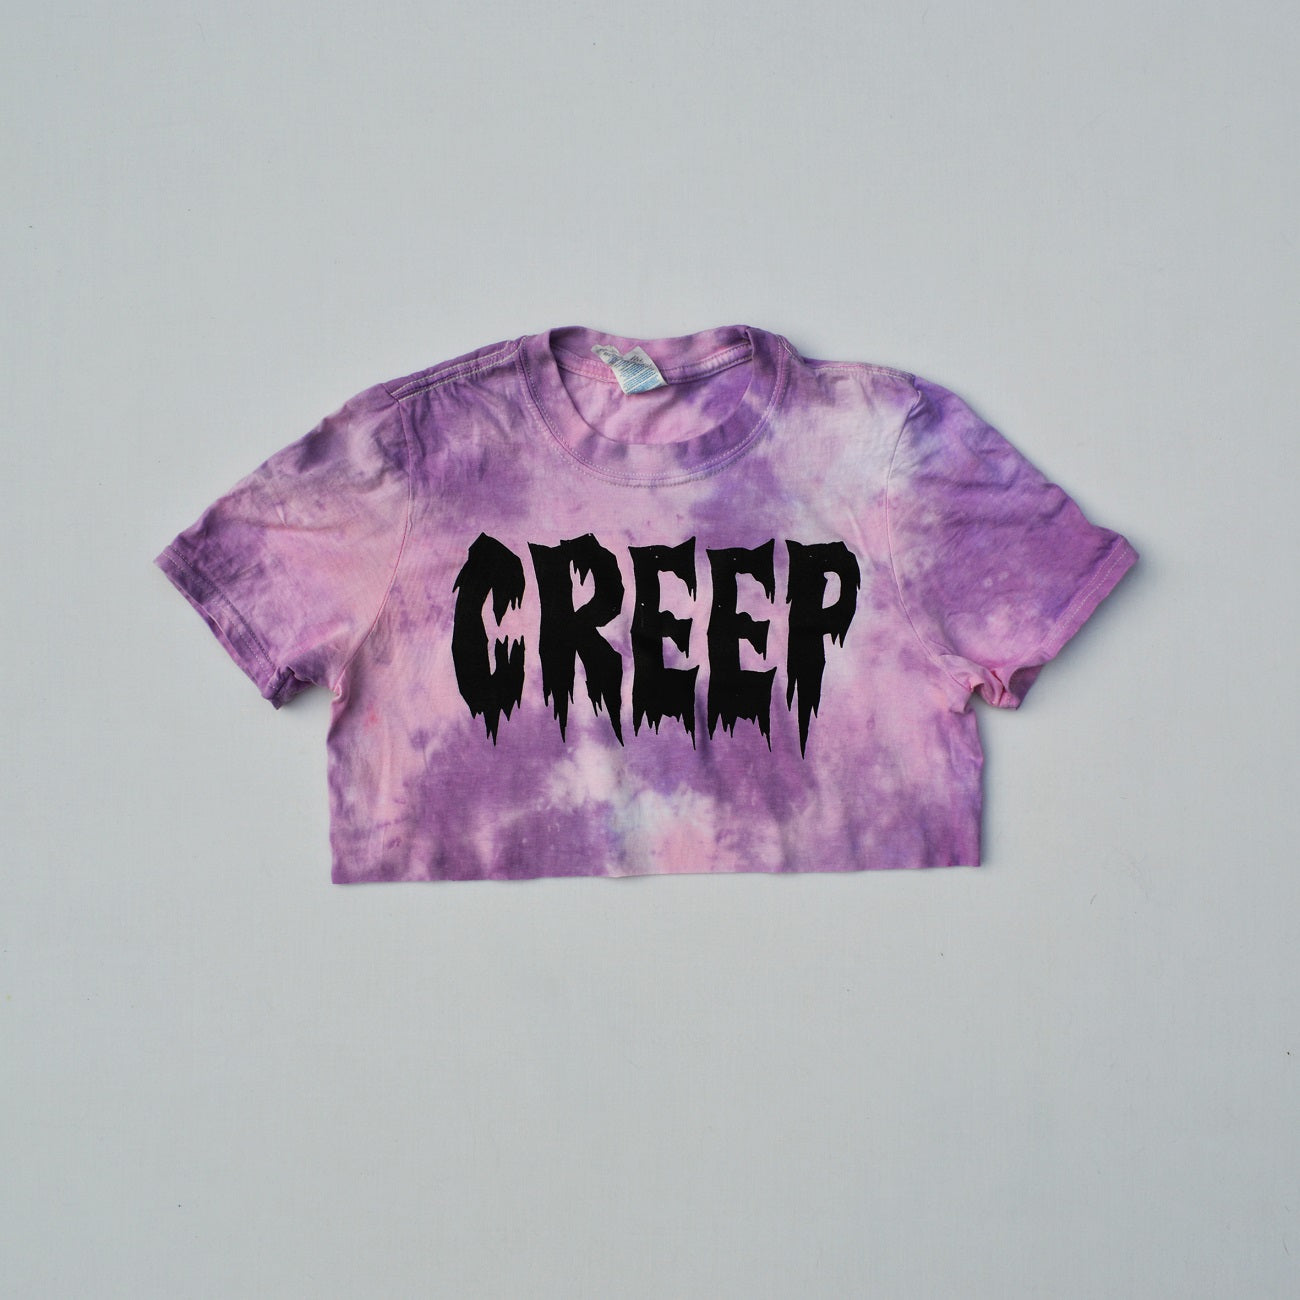 Creep Pink/Purple Tie Dye Crop Top